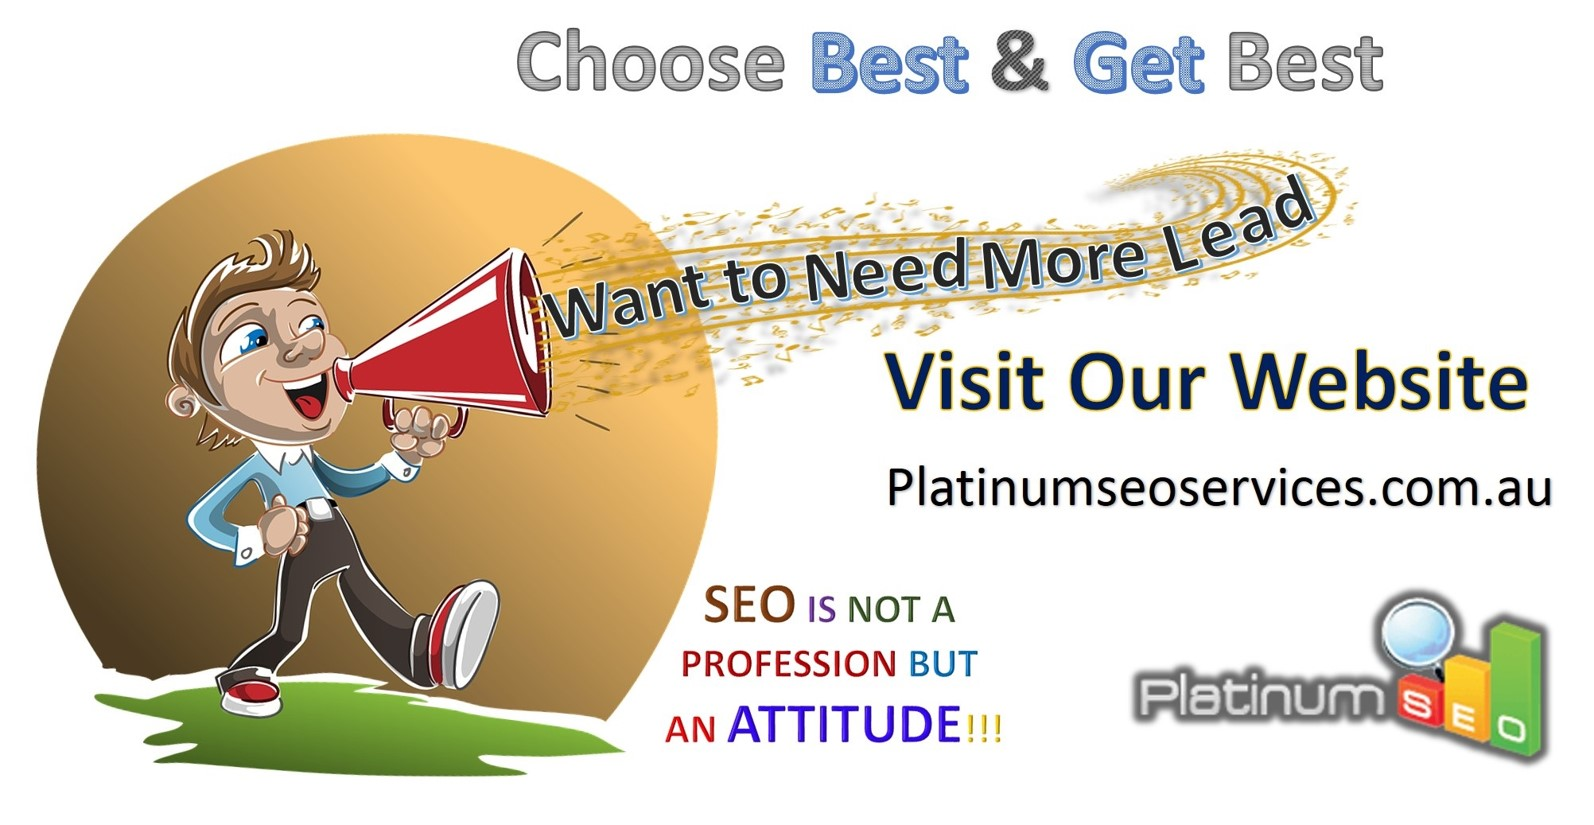 Melbourne SEO Helping Enterprises to Flourish Online